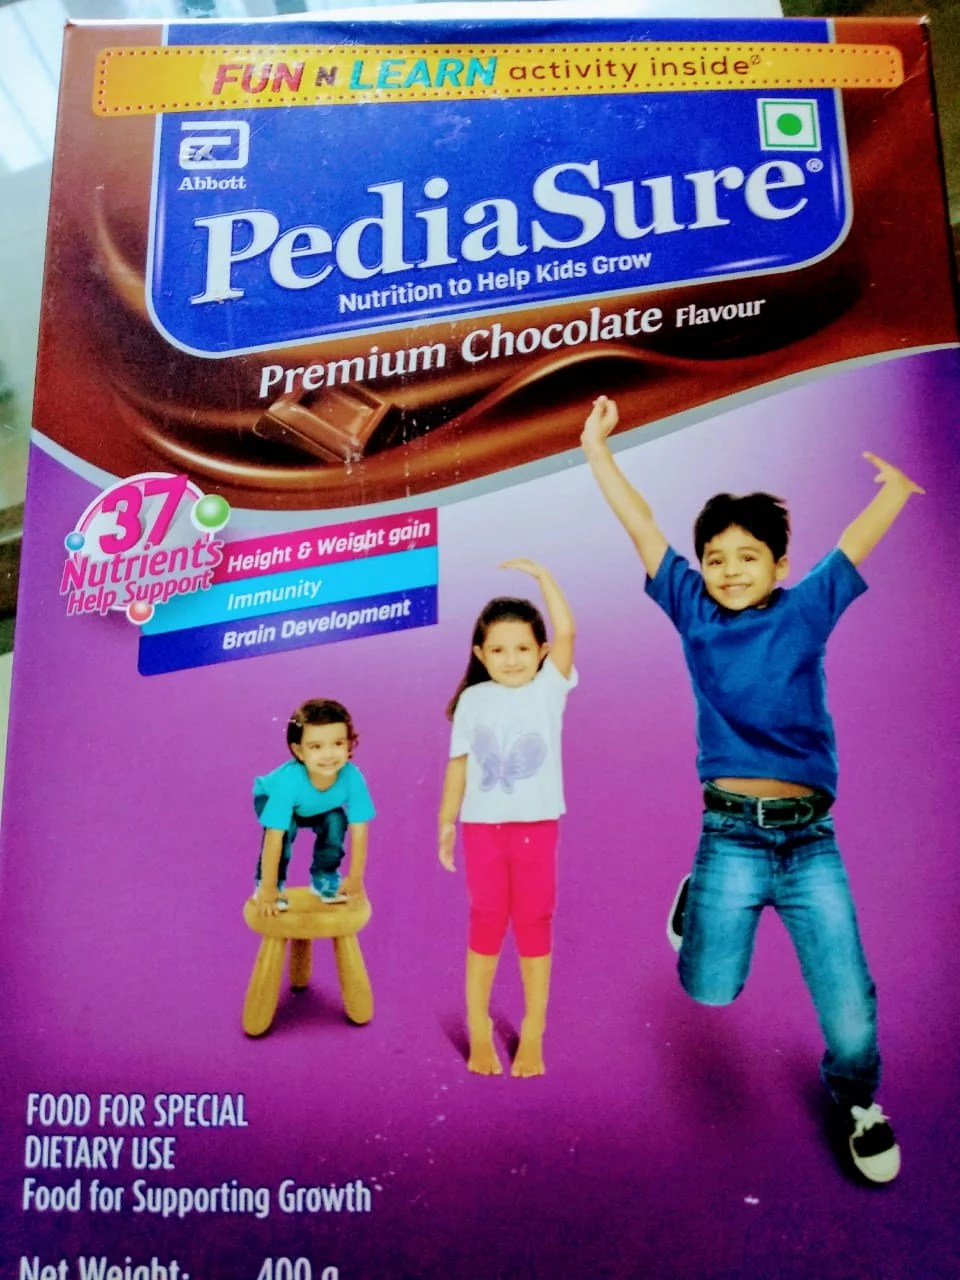 Cheers to #UnboxGrowth with PediaSure